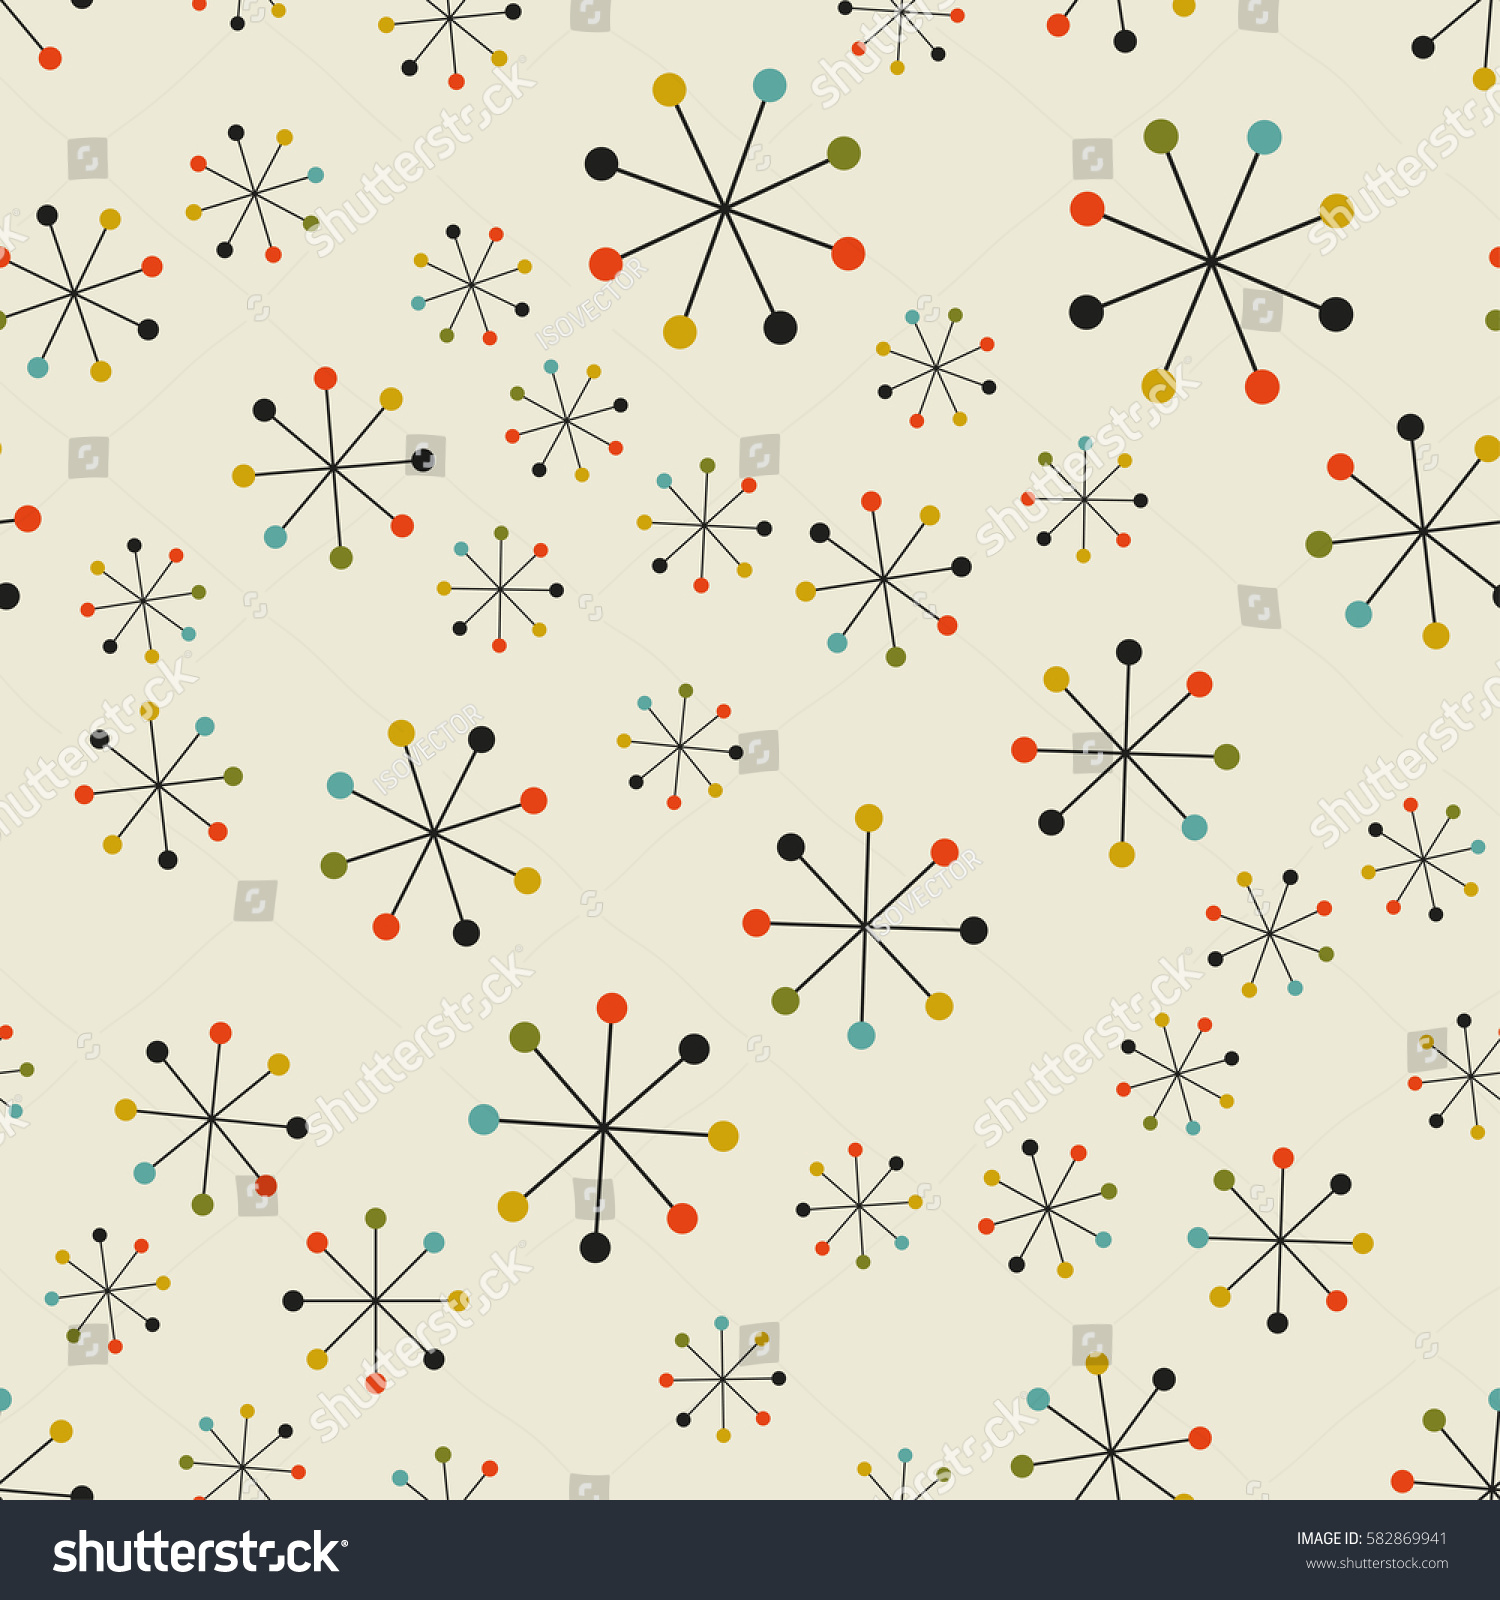 100 Mid Century Geometric Patterns Awesome Modern  : stock vector vector seamless mid century absctract geometric pattern space retro design 582869941 from 45.76.23.192 size 1500 x 1600 jpeg 485kB